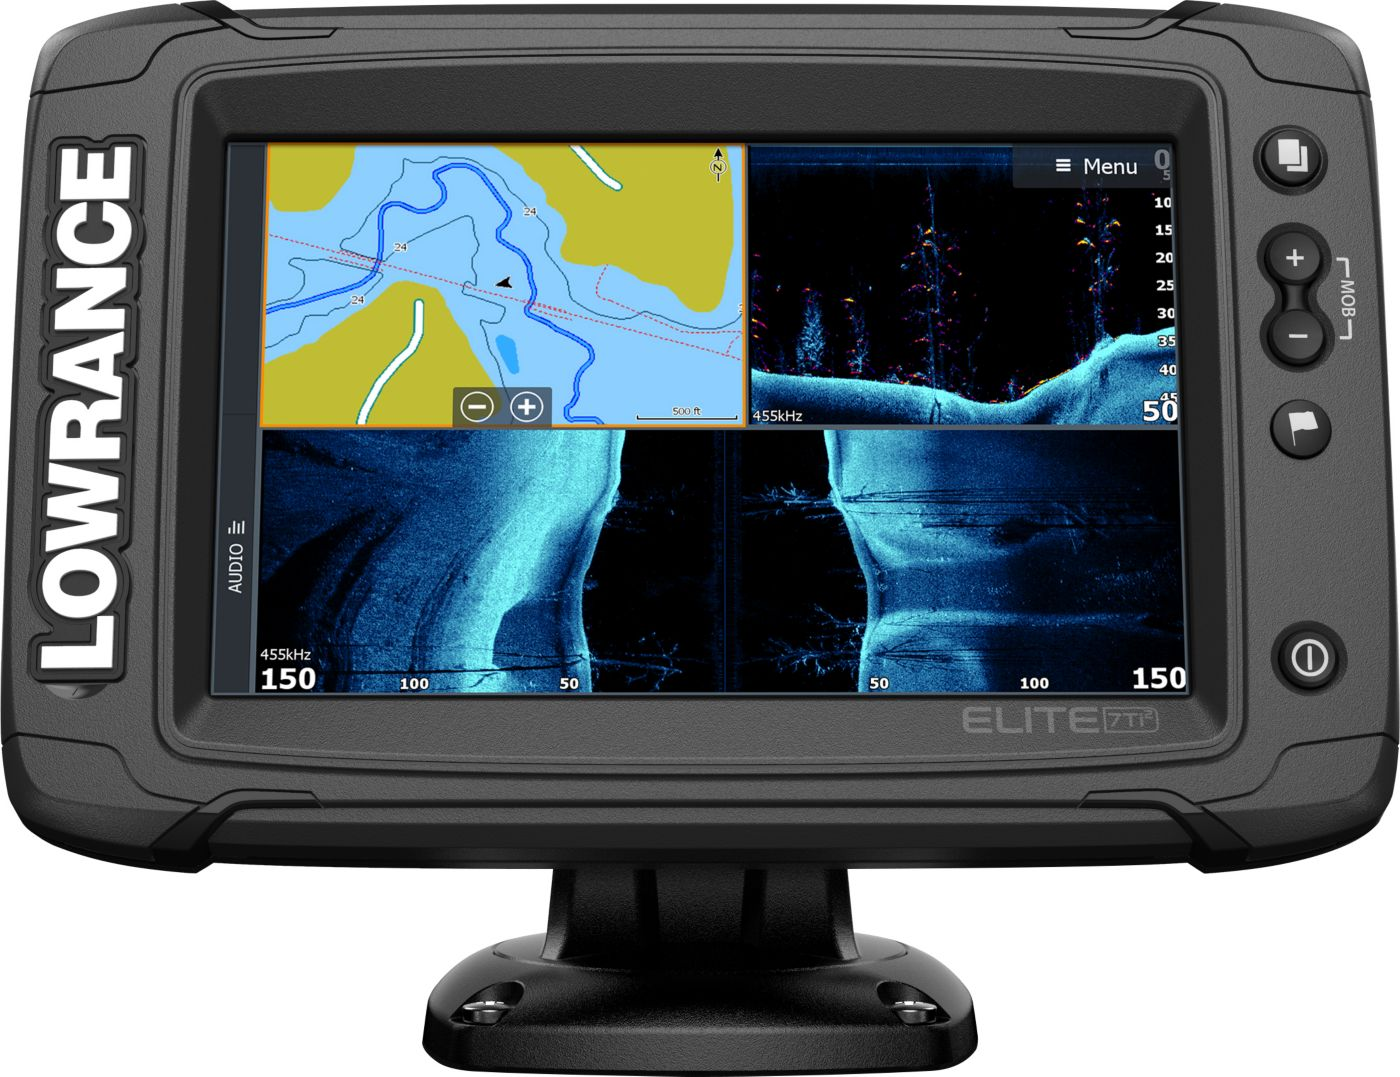 Lowrance Elite-7 Ti2 GPS Fish Finder with Active Imaging (000-14638-001)